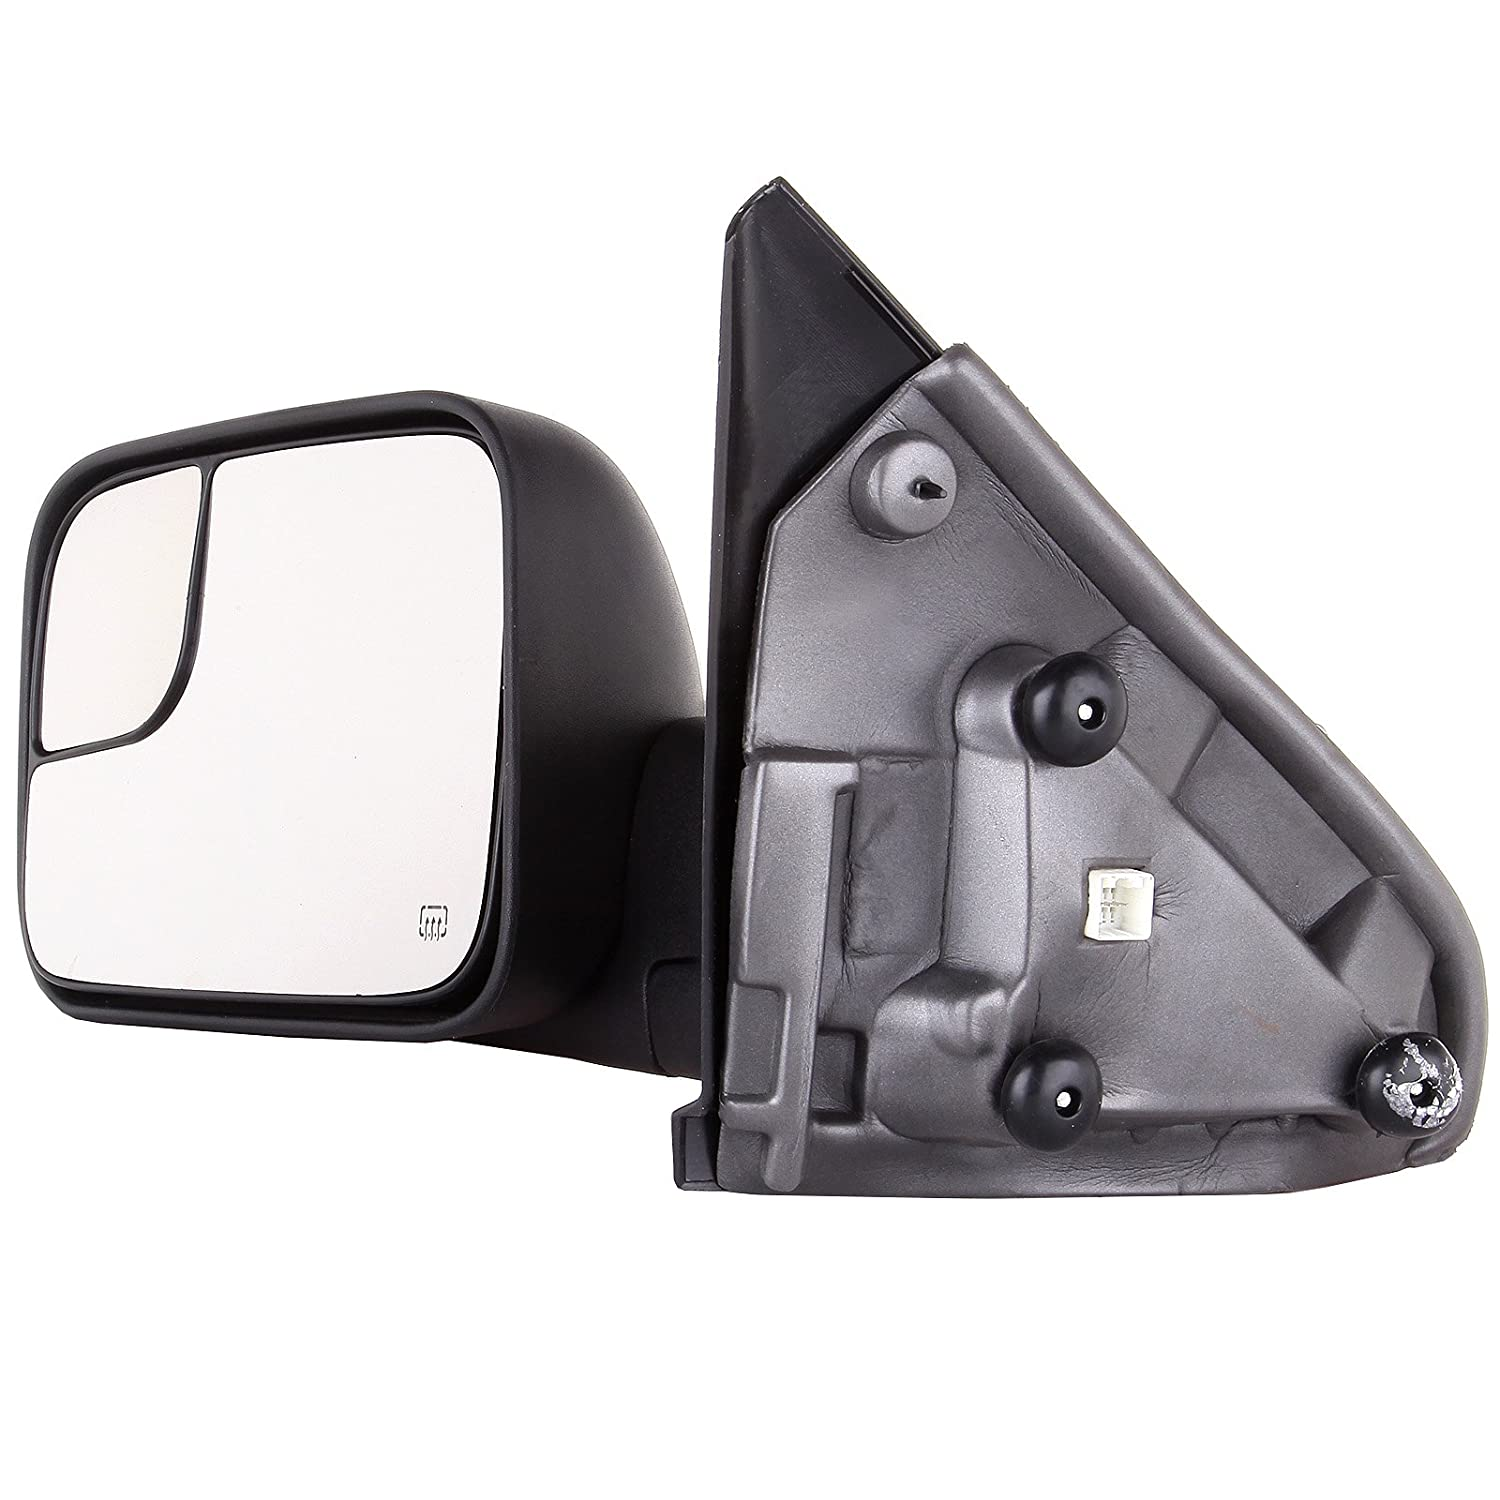 Replacement fit for 03-09 Dodge Ram 2500 3500 Tow Mirror Pair Set cciyu Left+Right Power Heated FlipUp Towing Mirrors Replacement fit for 02-08 Dodge Ram 1500